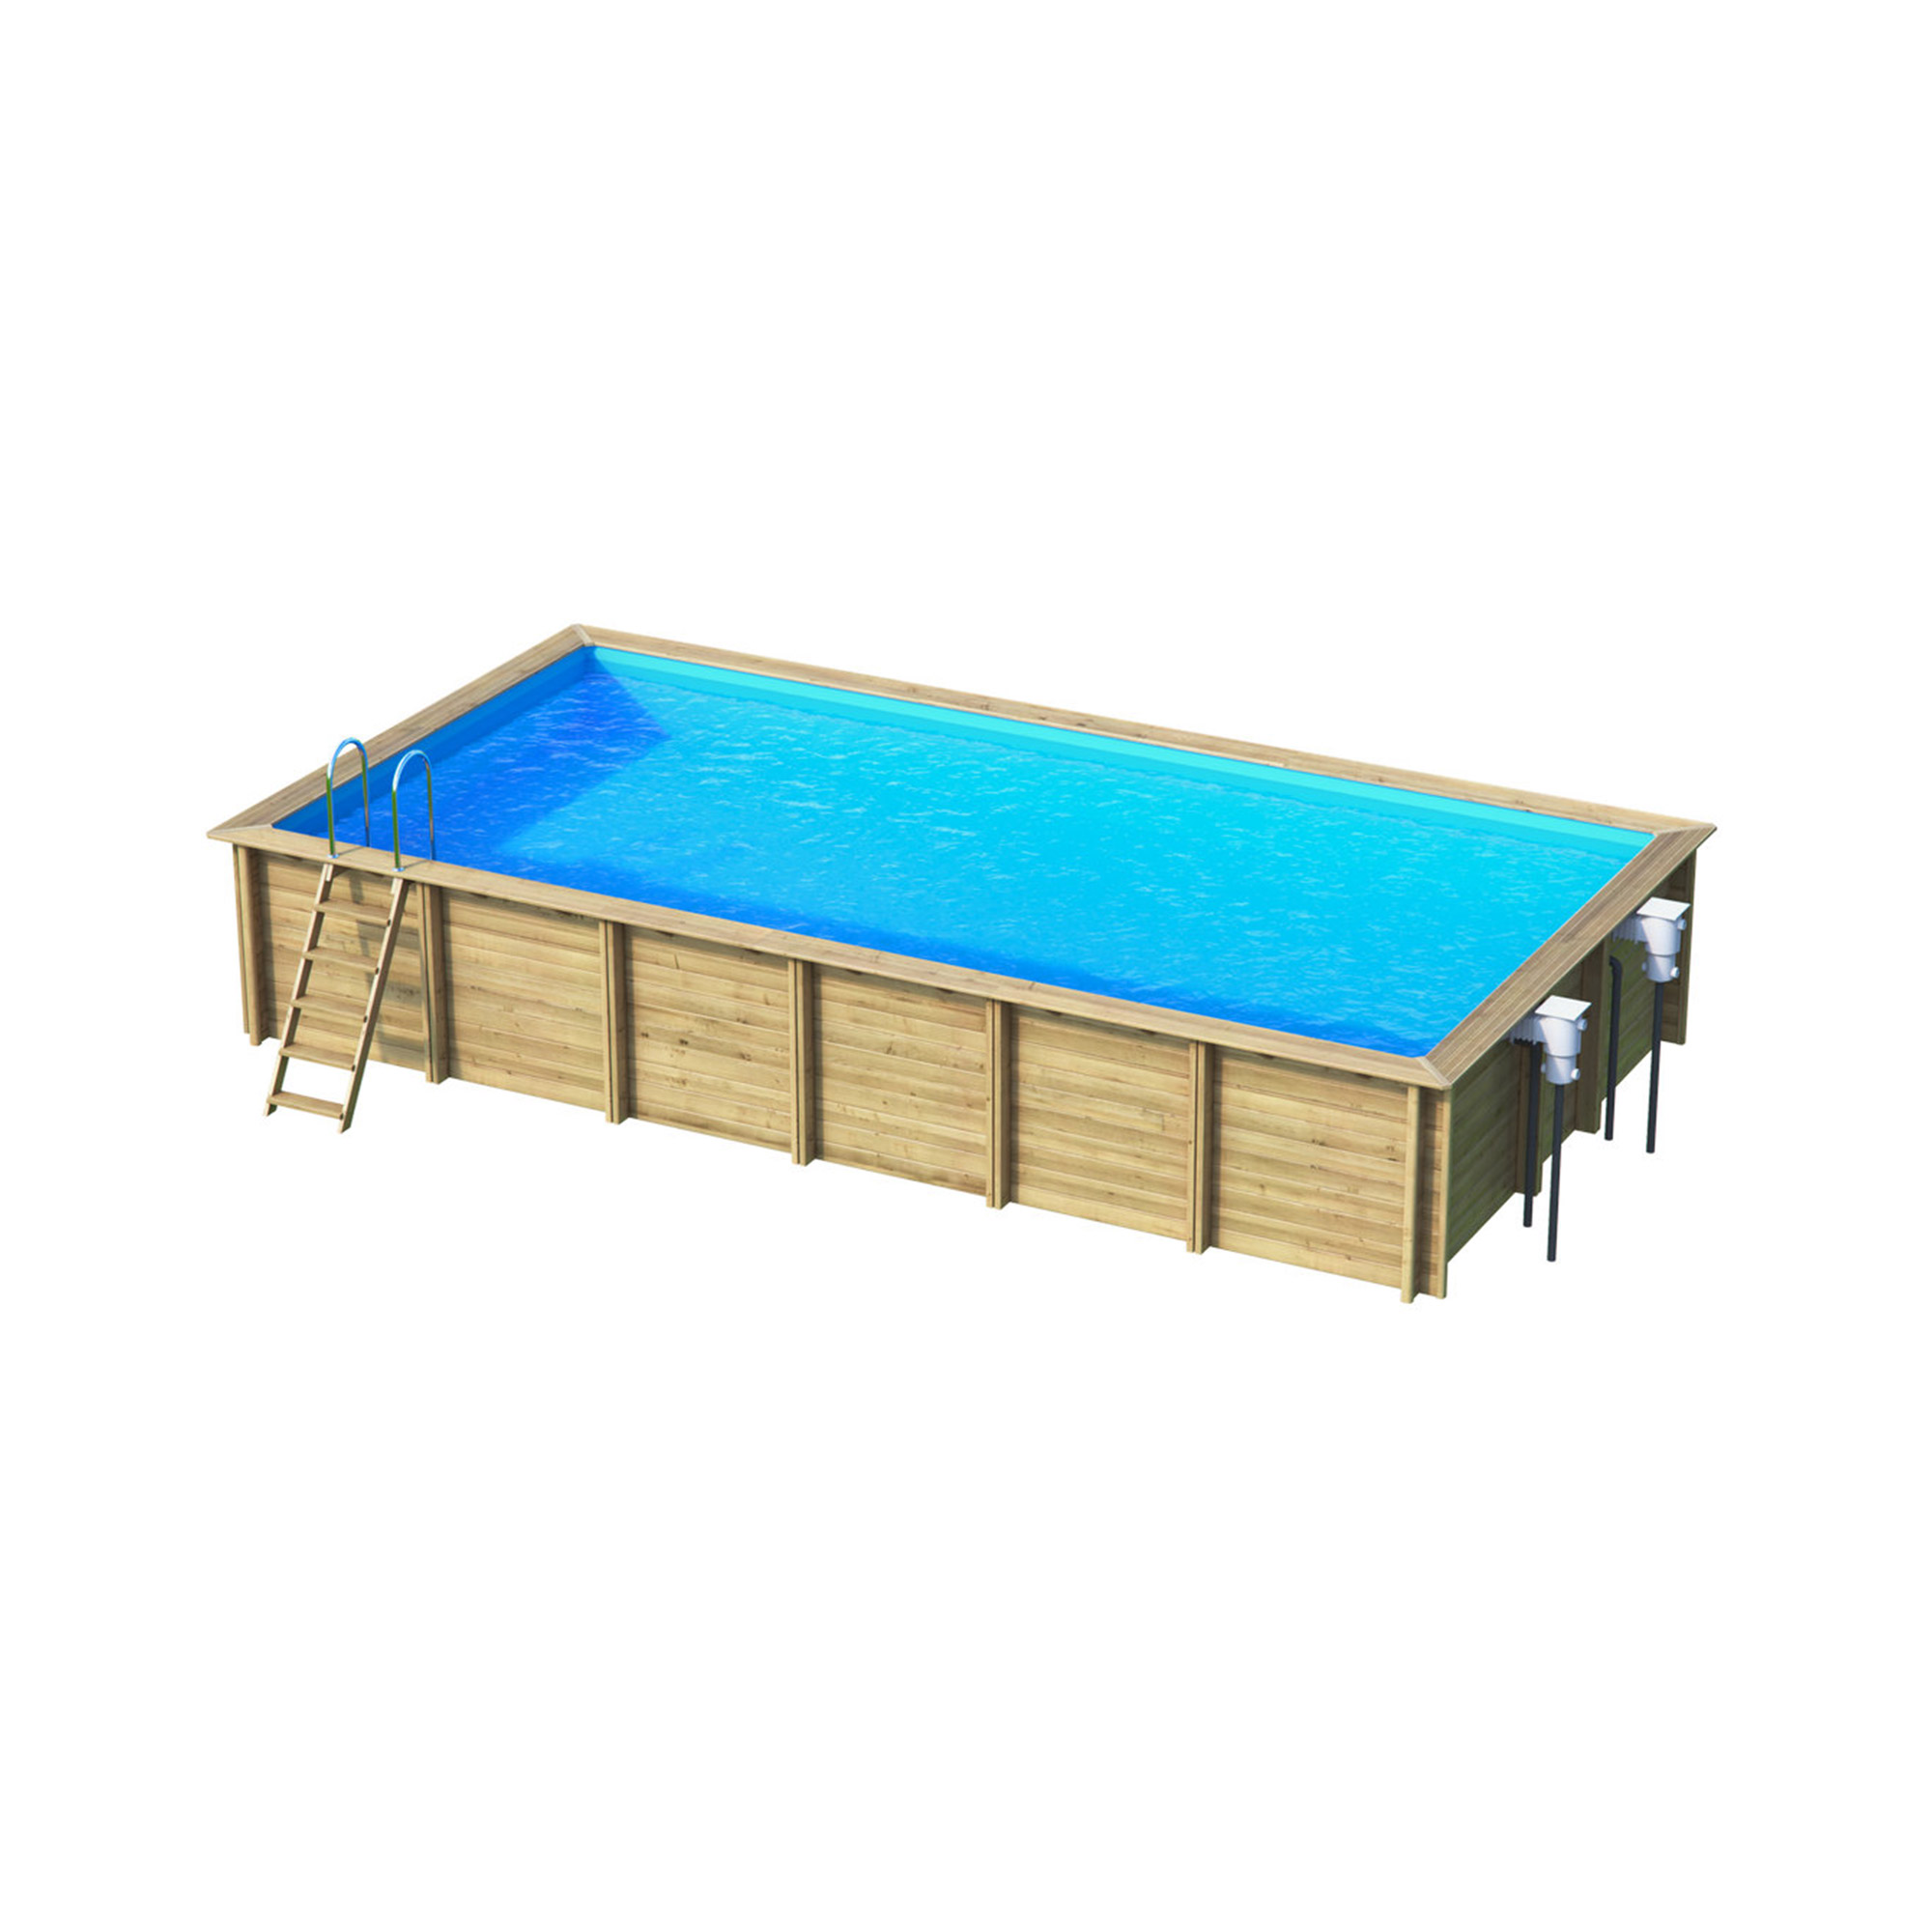 piscine bois rectangulaire hors sol semi enterr e enterr e weva rectangle 8x4 piscines d. Black Bedroom Furniture Sets. Home Design Ideas